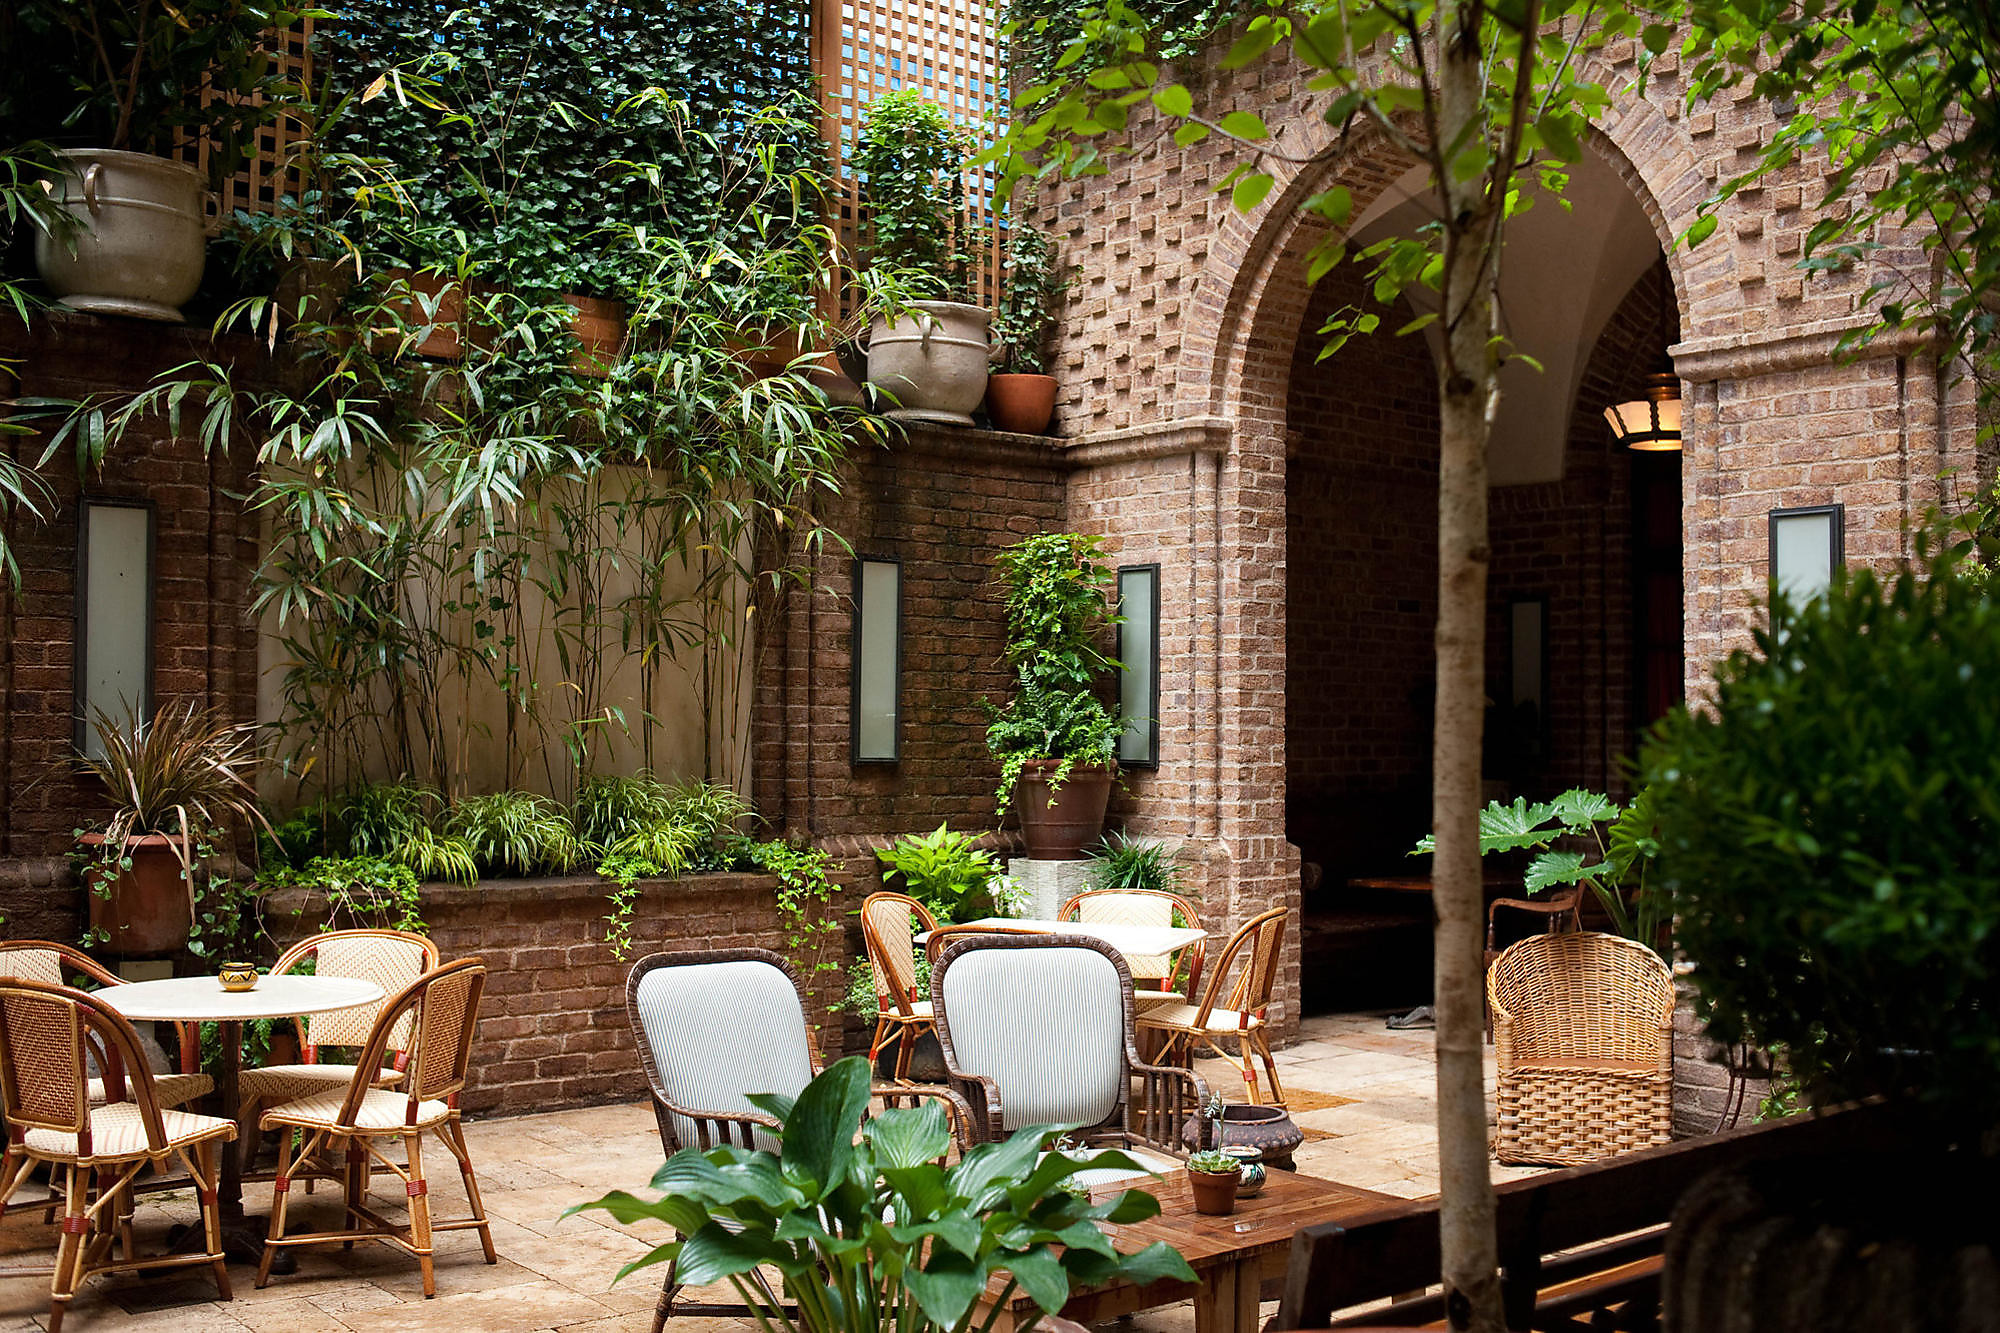 The charming courtyard at the Greenwich Hotel in New York City.